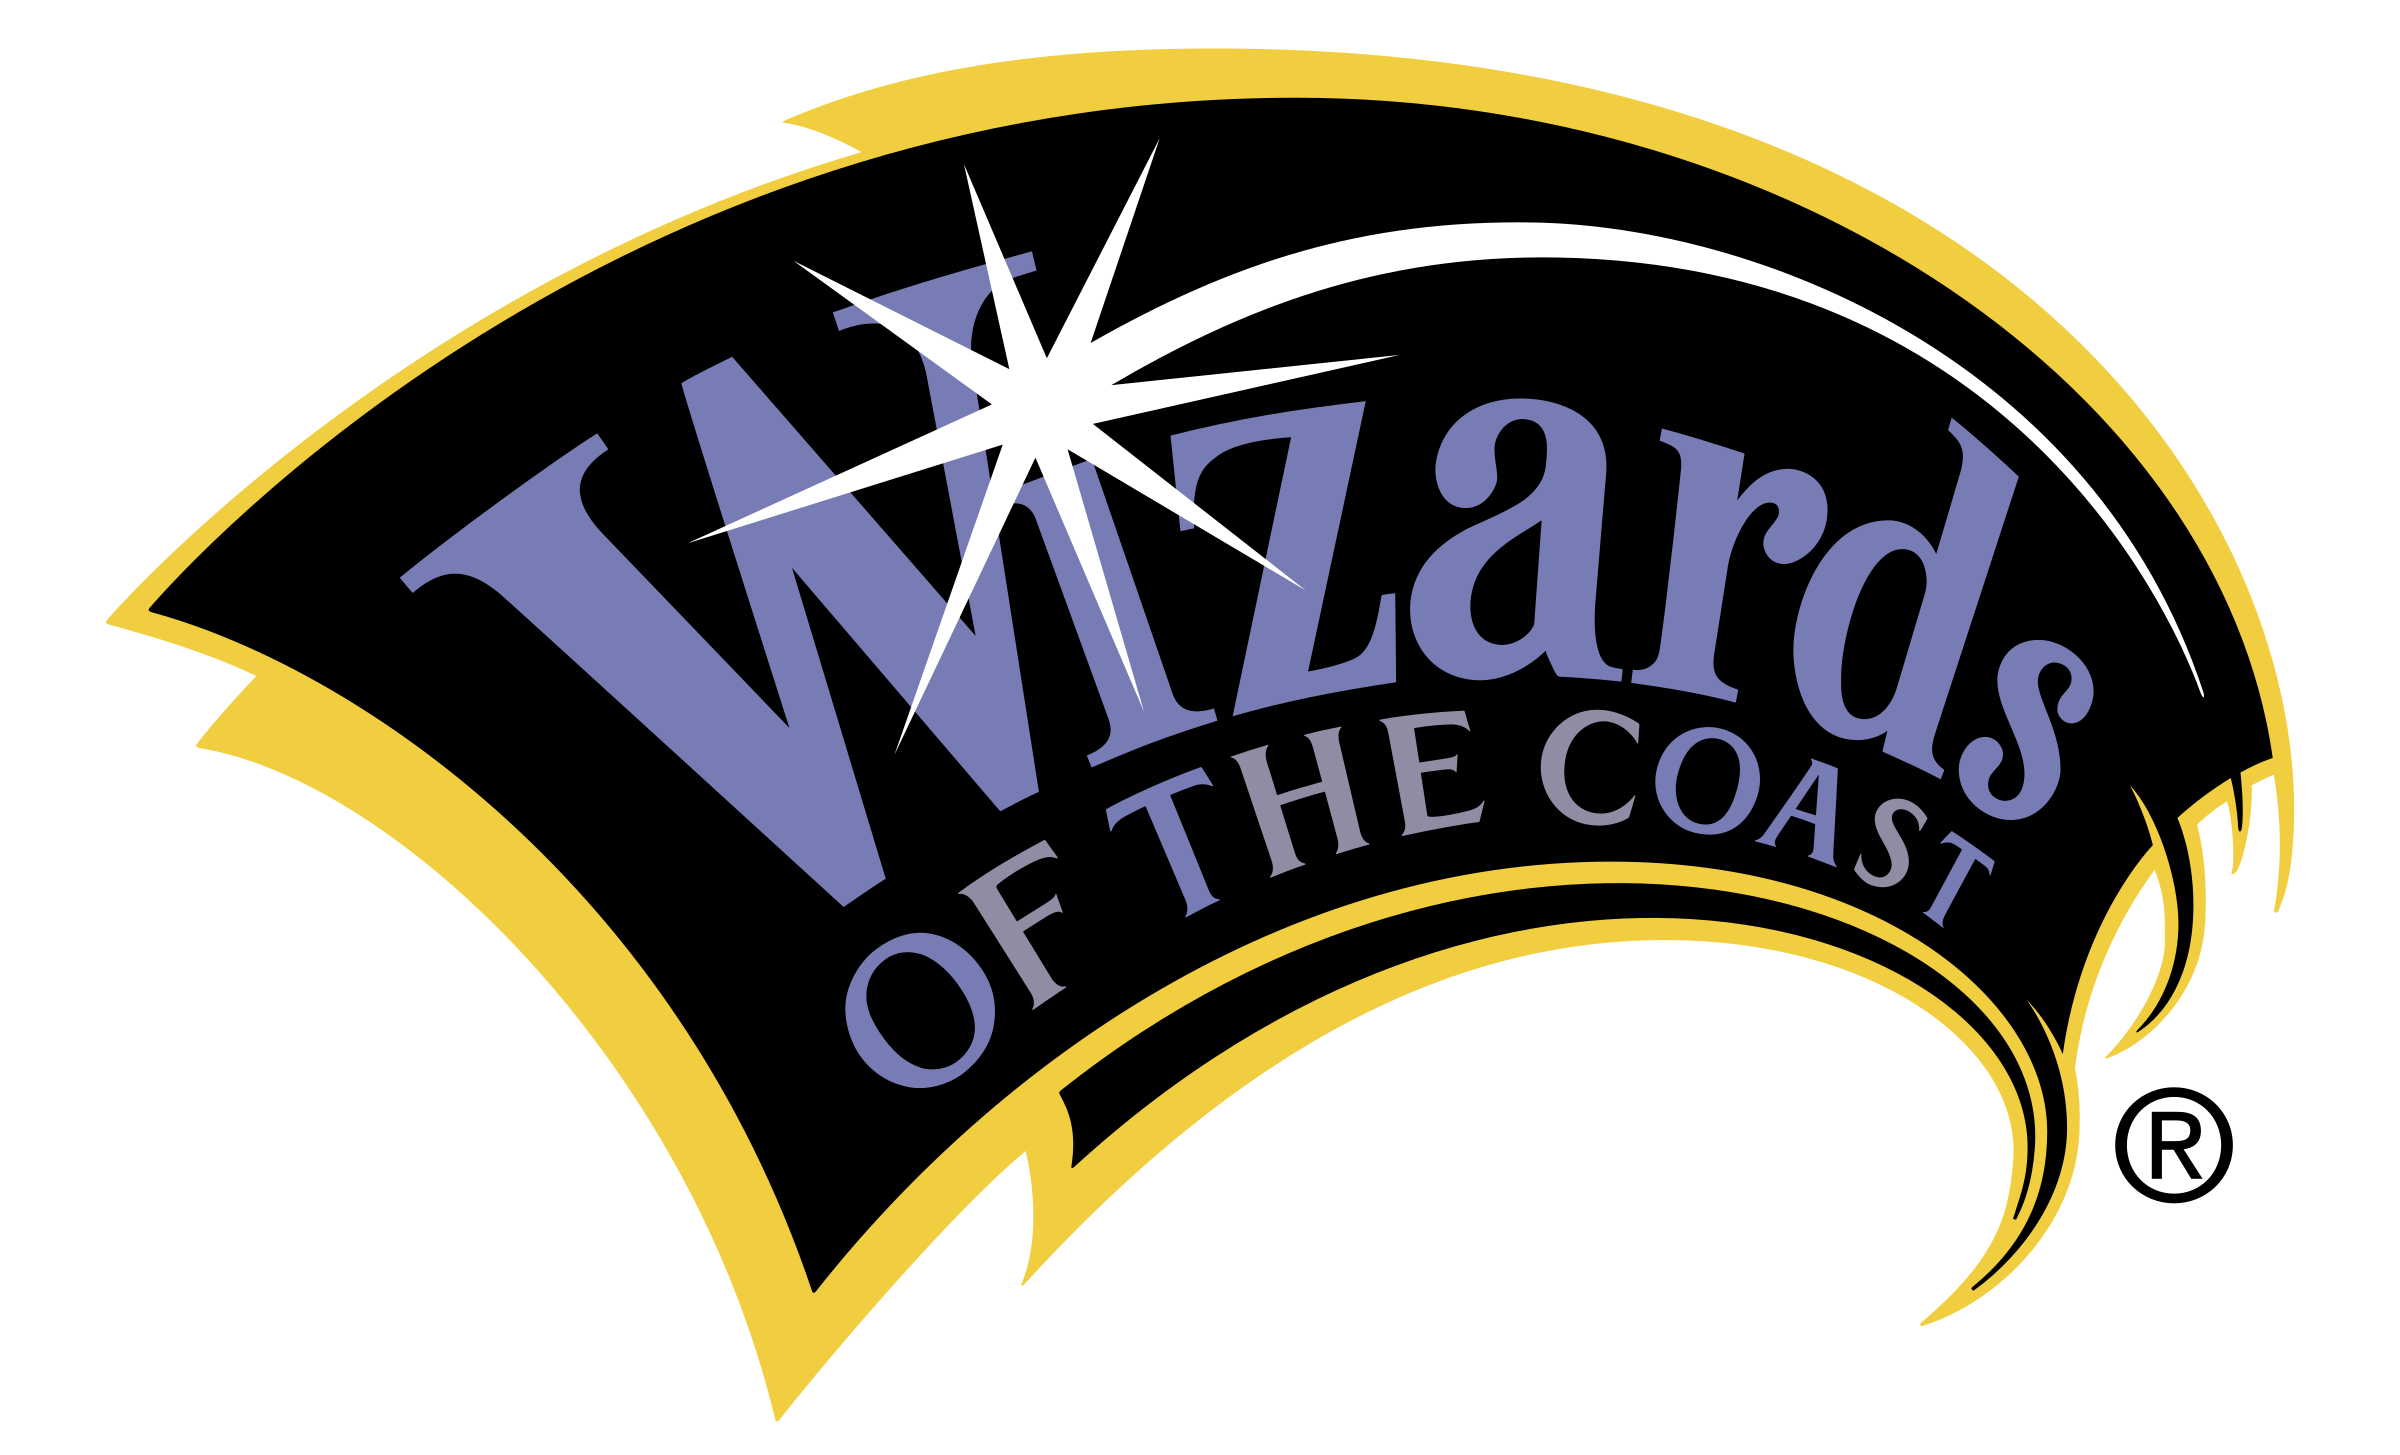 wizards-of-the-coast-logo-png-transparent.png